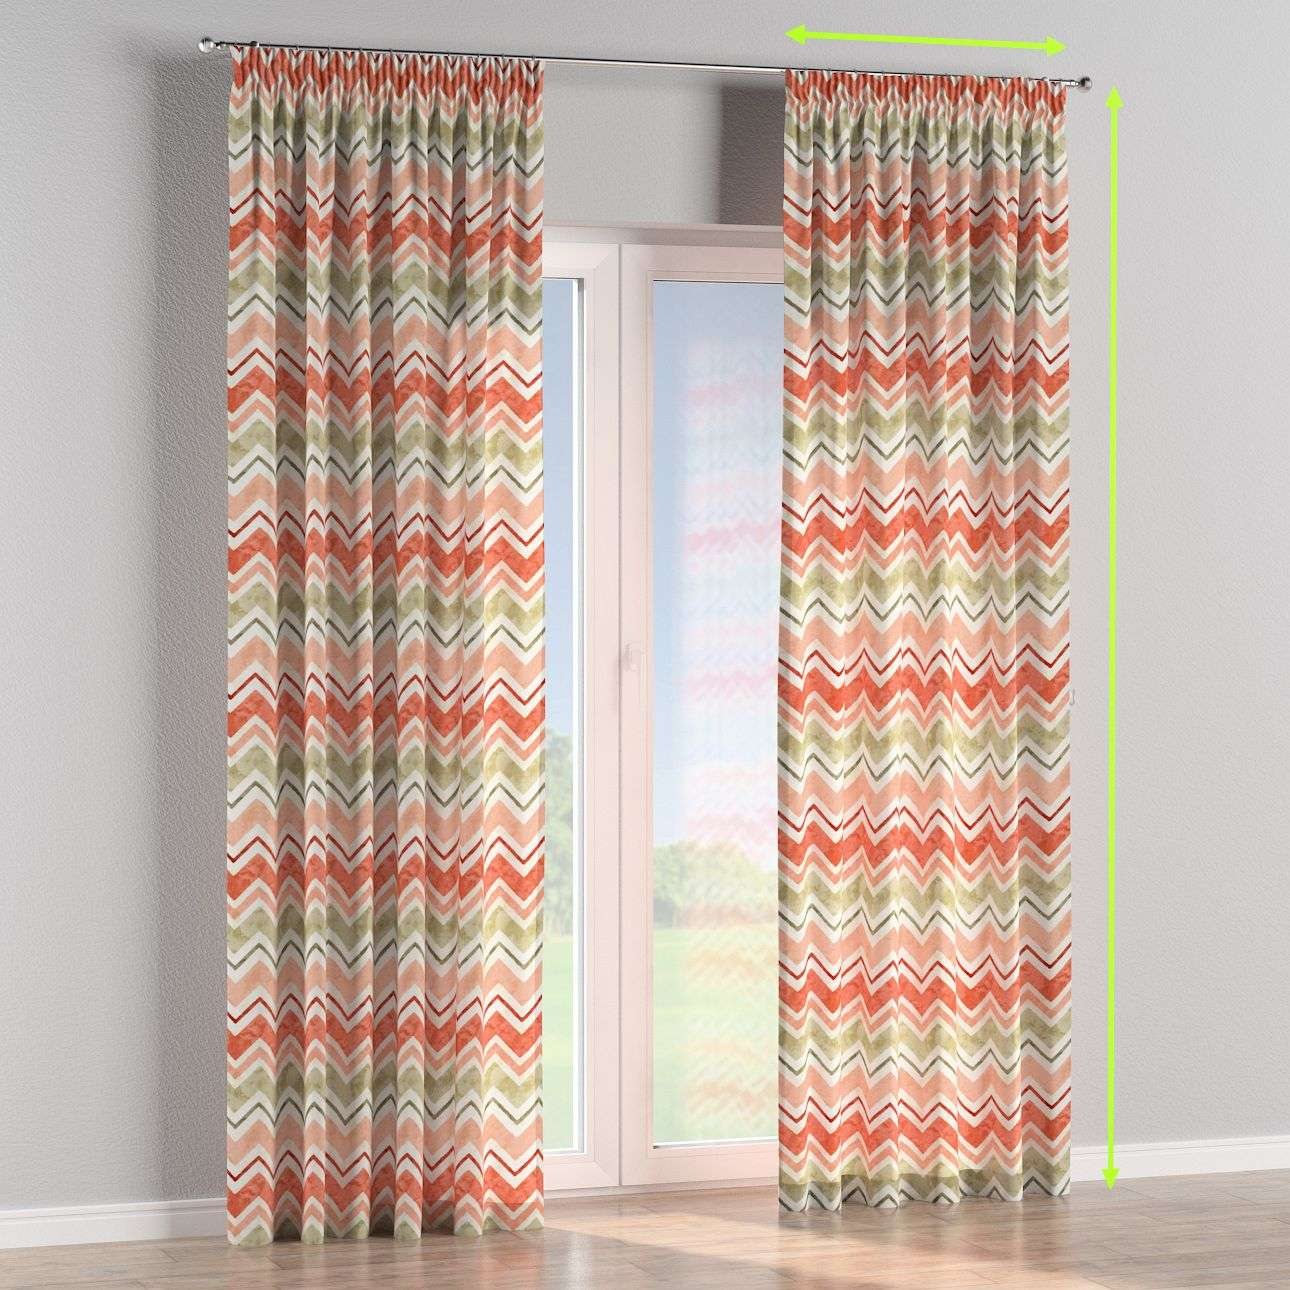 Pencil pleat curtains in collection SALE, fabric: 141-40